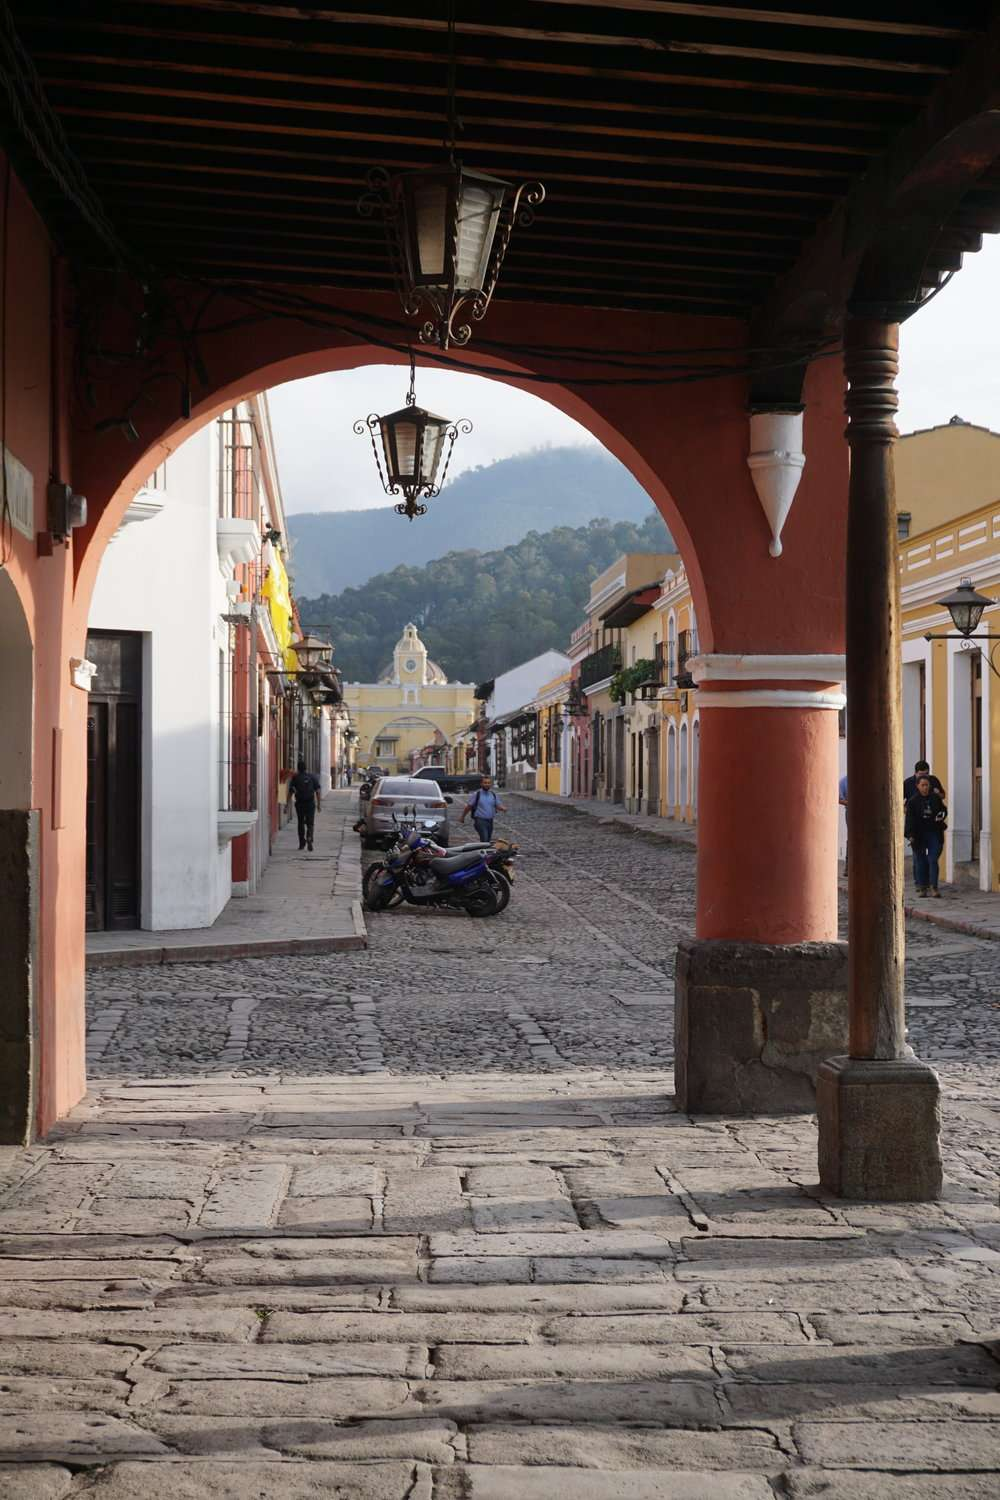 under an archway in Antigua, Guatemala,